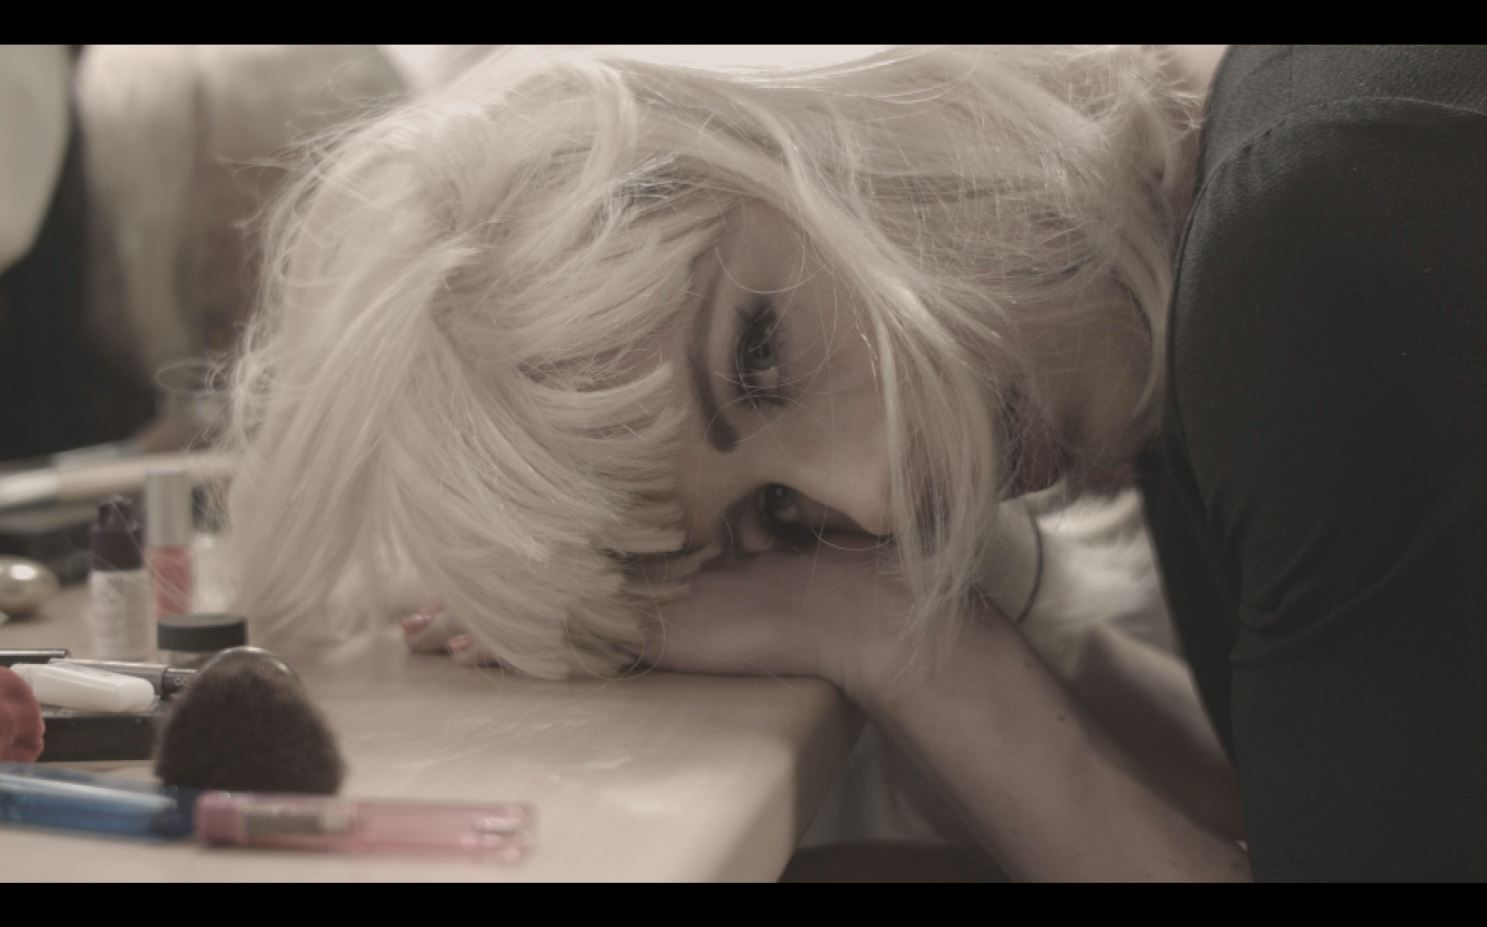 A young woman in a platinum blonde wig rests her head on a desk